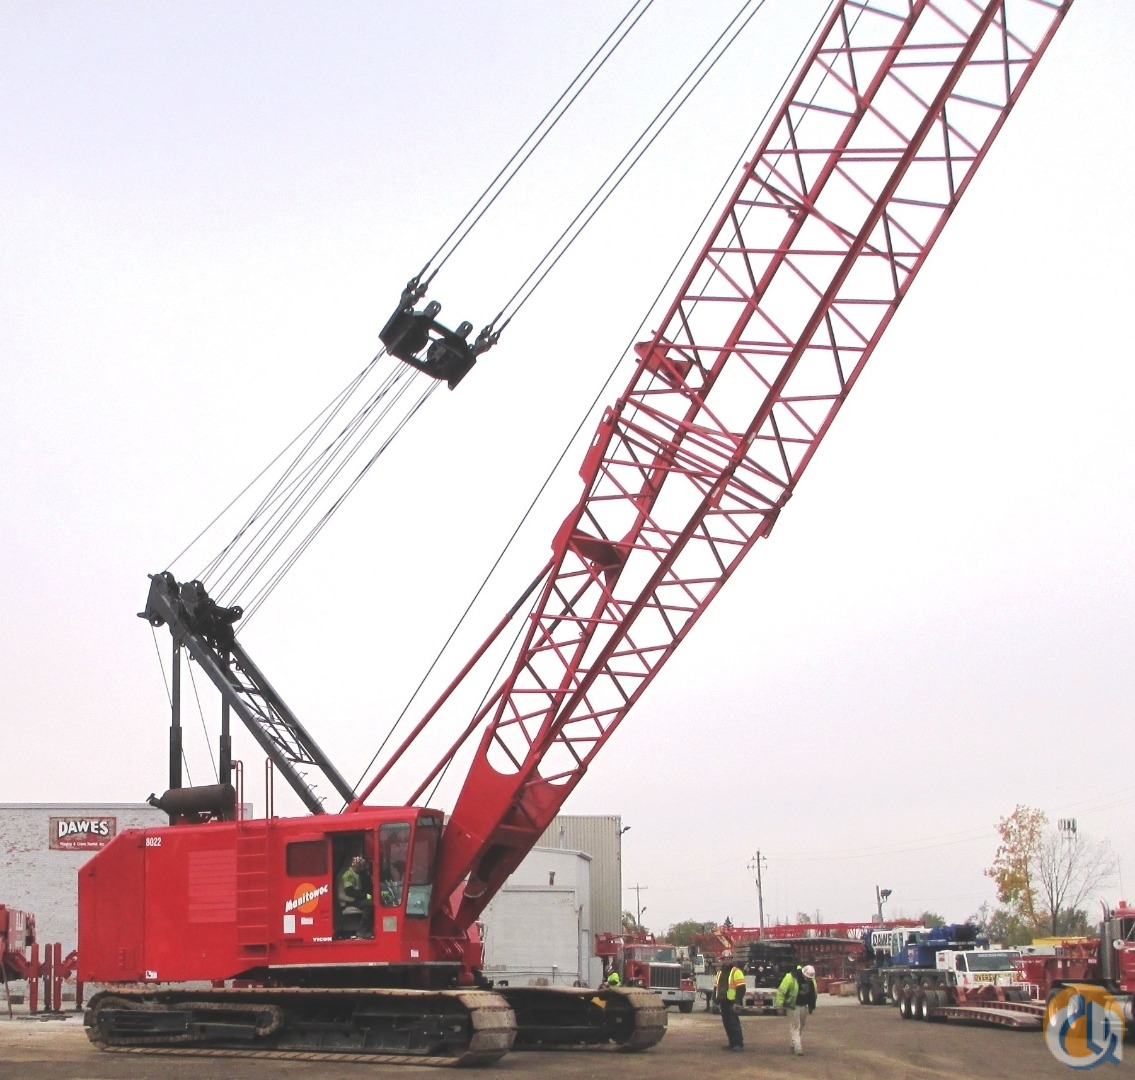 Manitowoc 4100W For Sale Crane for Sale in Pittsburgh Pennsylvania on  CraneNetwork.com